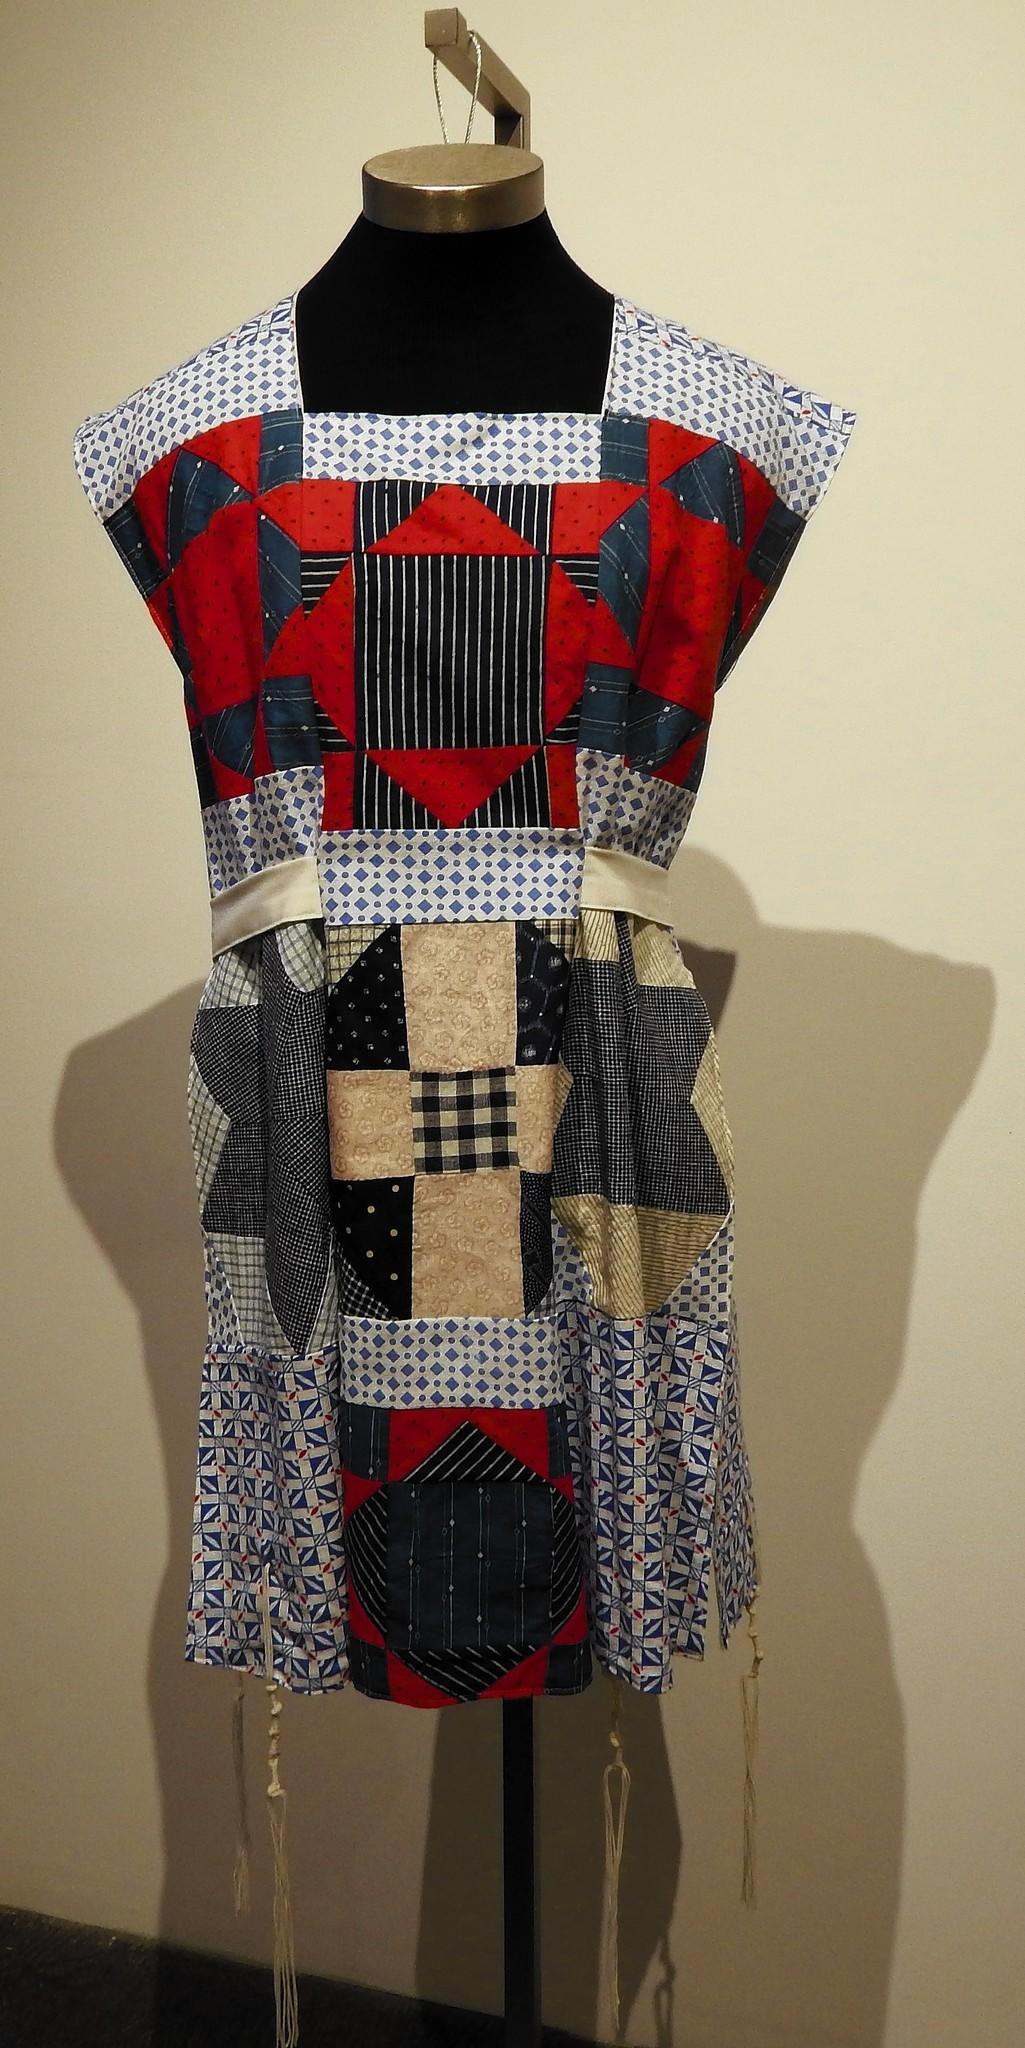 "From the exhibit ""Rachel Kanter: Ritual Cloth"" at Charter Oak Cultural Center in Hartford."